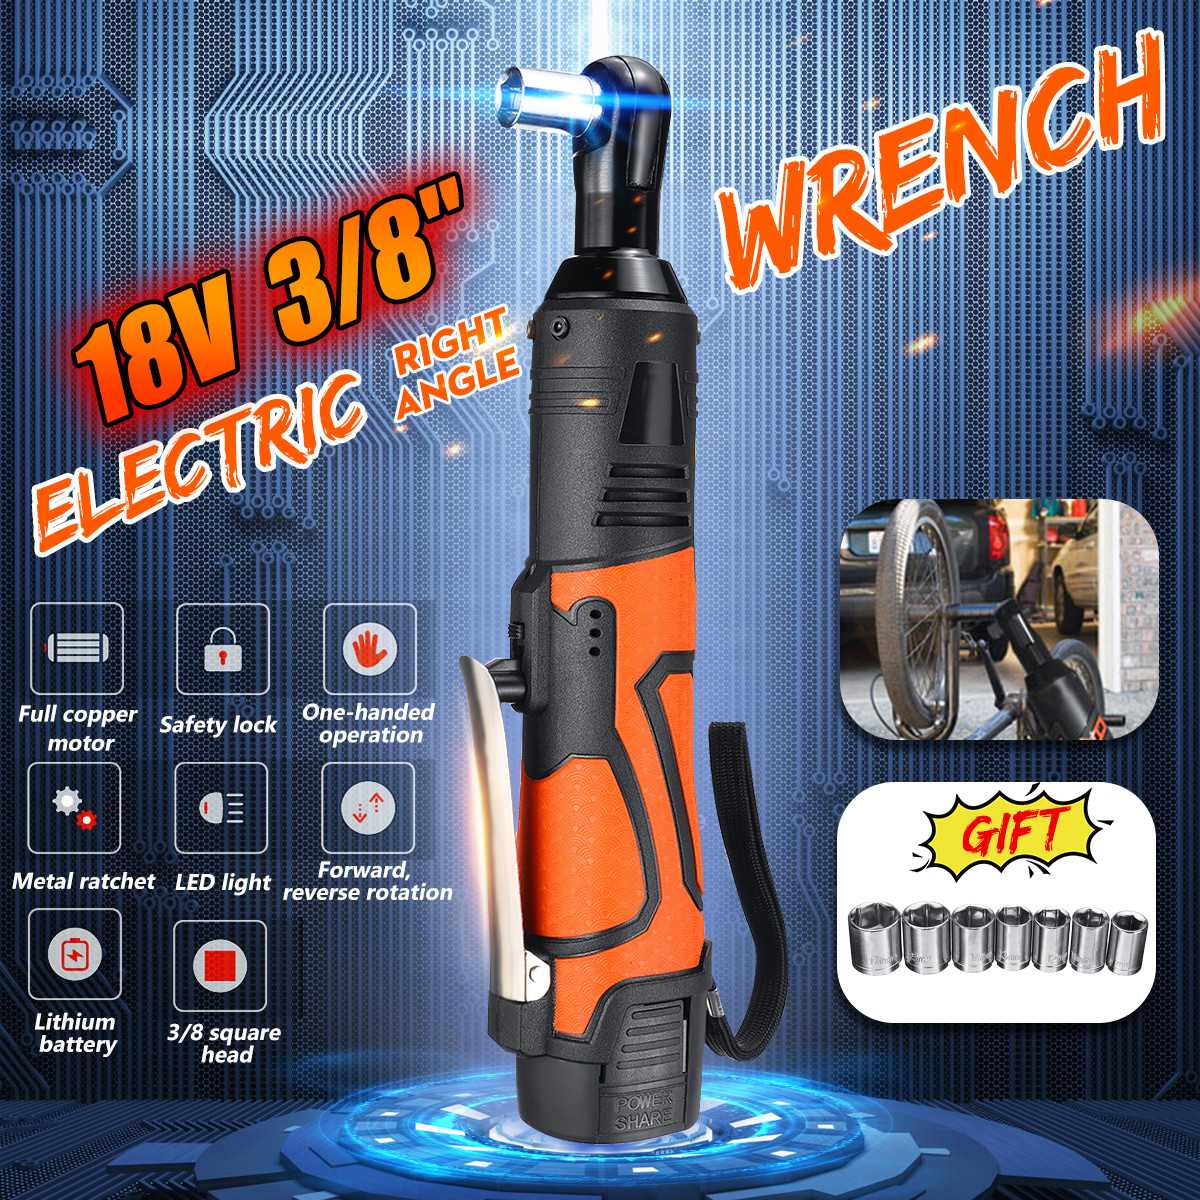 18V Portable Cordless Electric Wrench 3/8 60N.m Rechargeable Ratchet 90 degree Right Angle +Wrench Power tools Set18V Portable Cordless Electric Wrench 3/8 60N.m Rechargeable Ratchet 90 degree Right Angle +Wrench Power tools Set